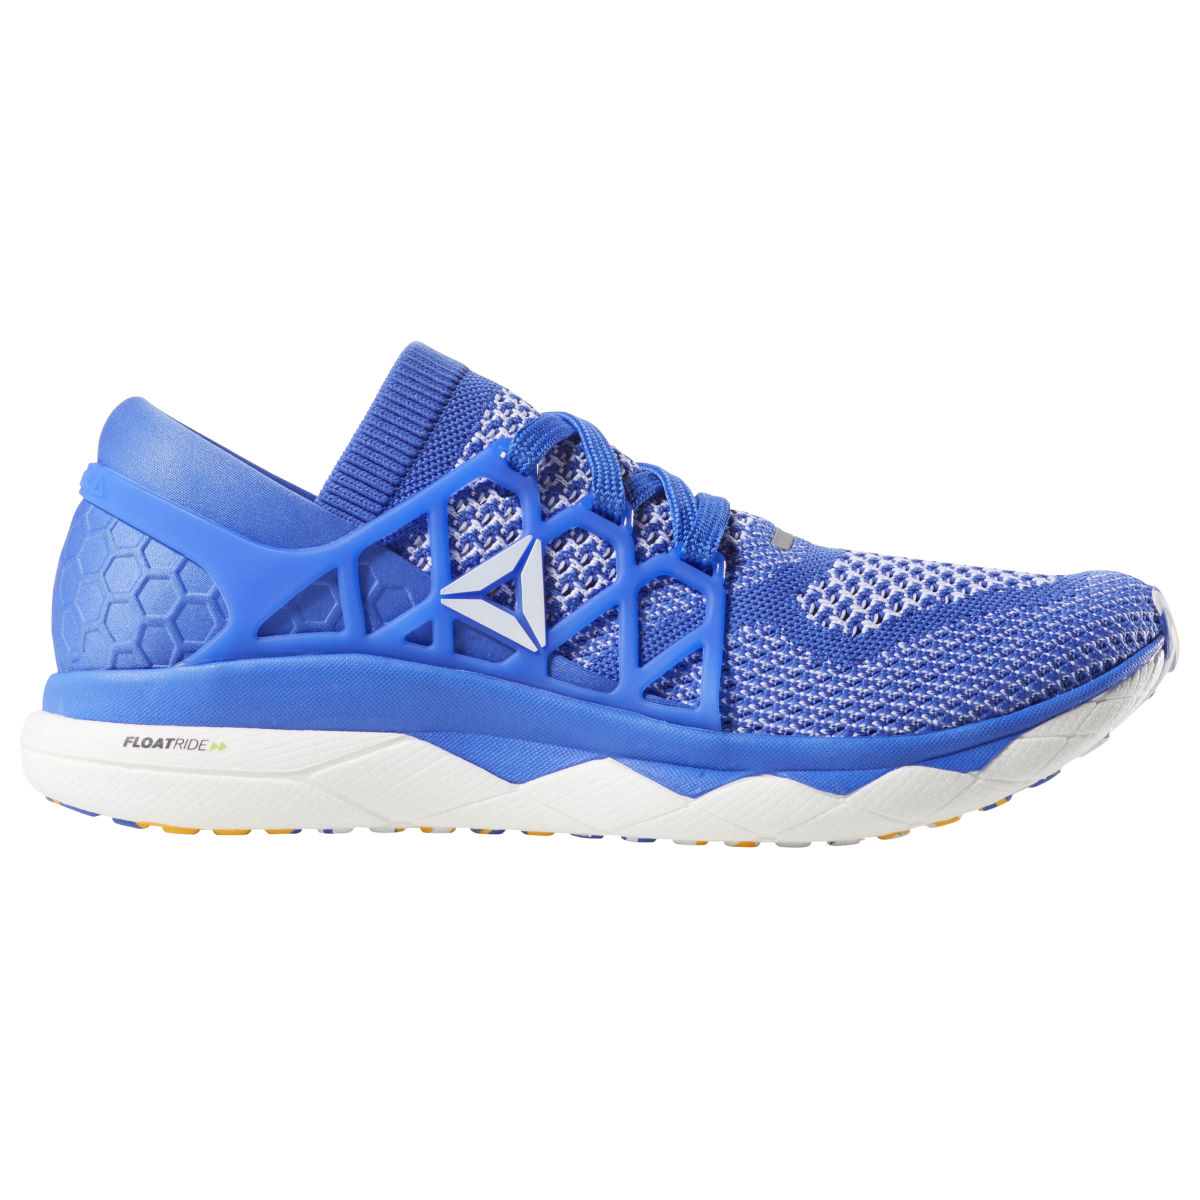 Reebok Reebok Floatride ULTK  Run Shoe Shoes   Running Shoes